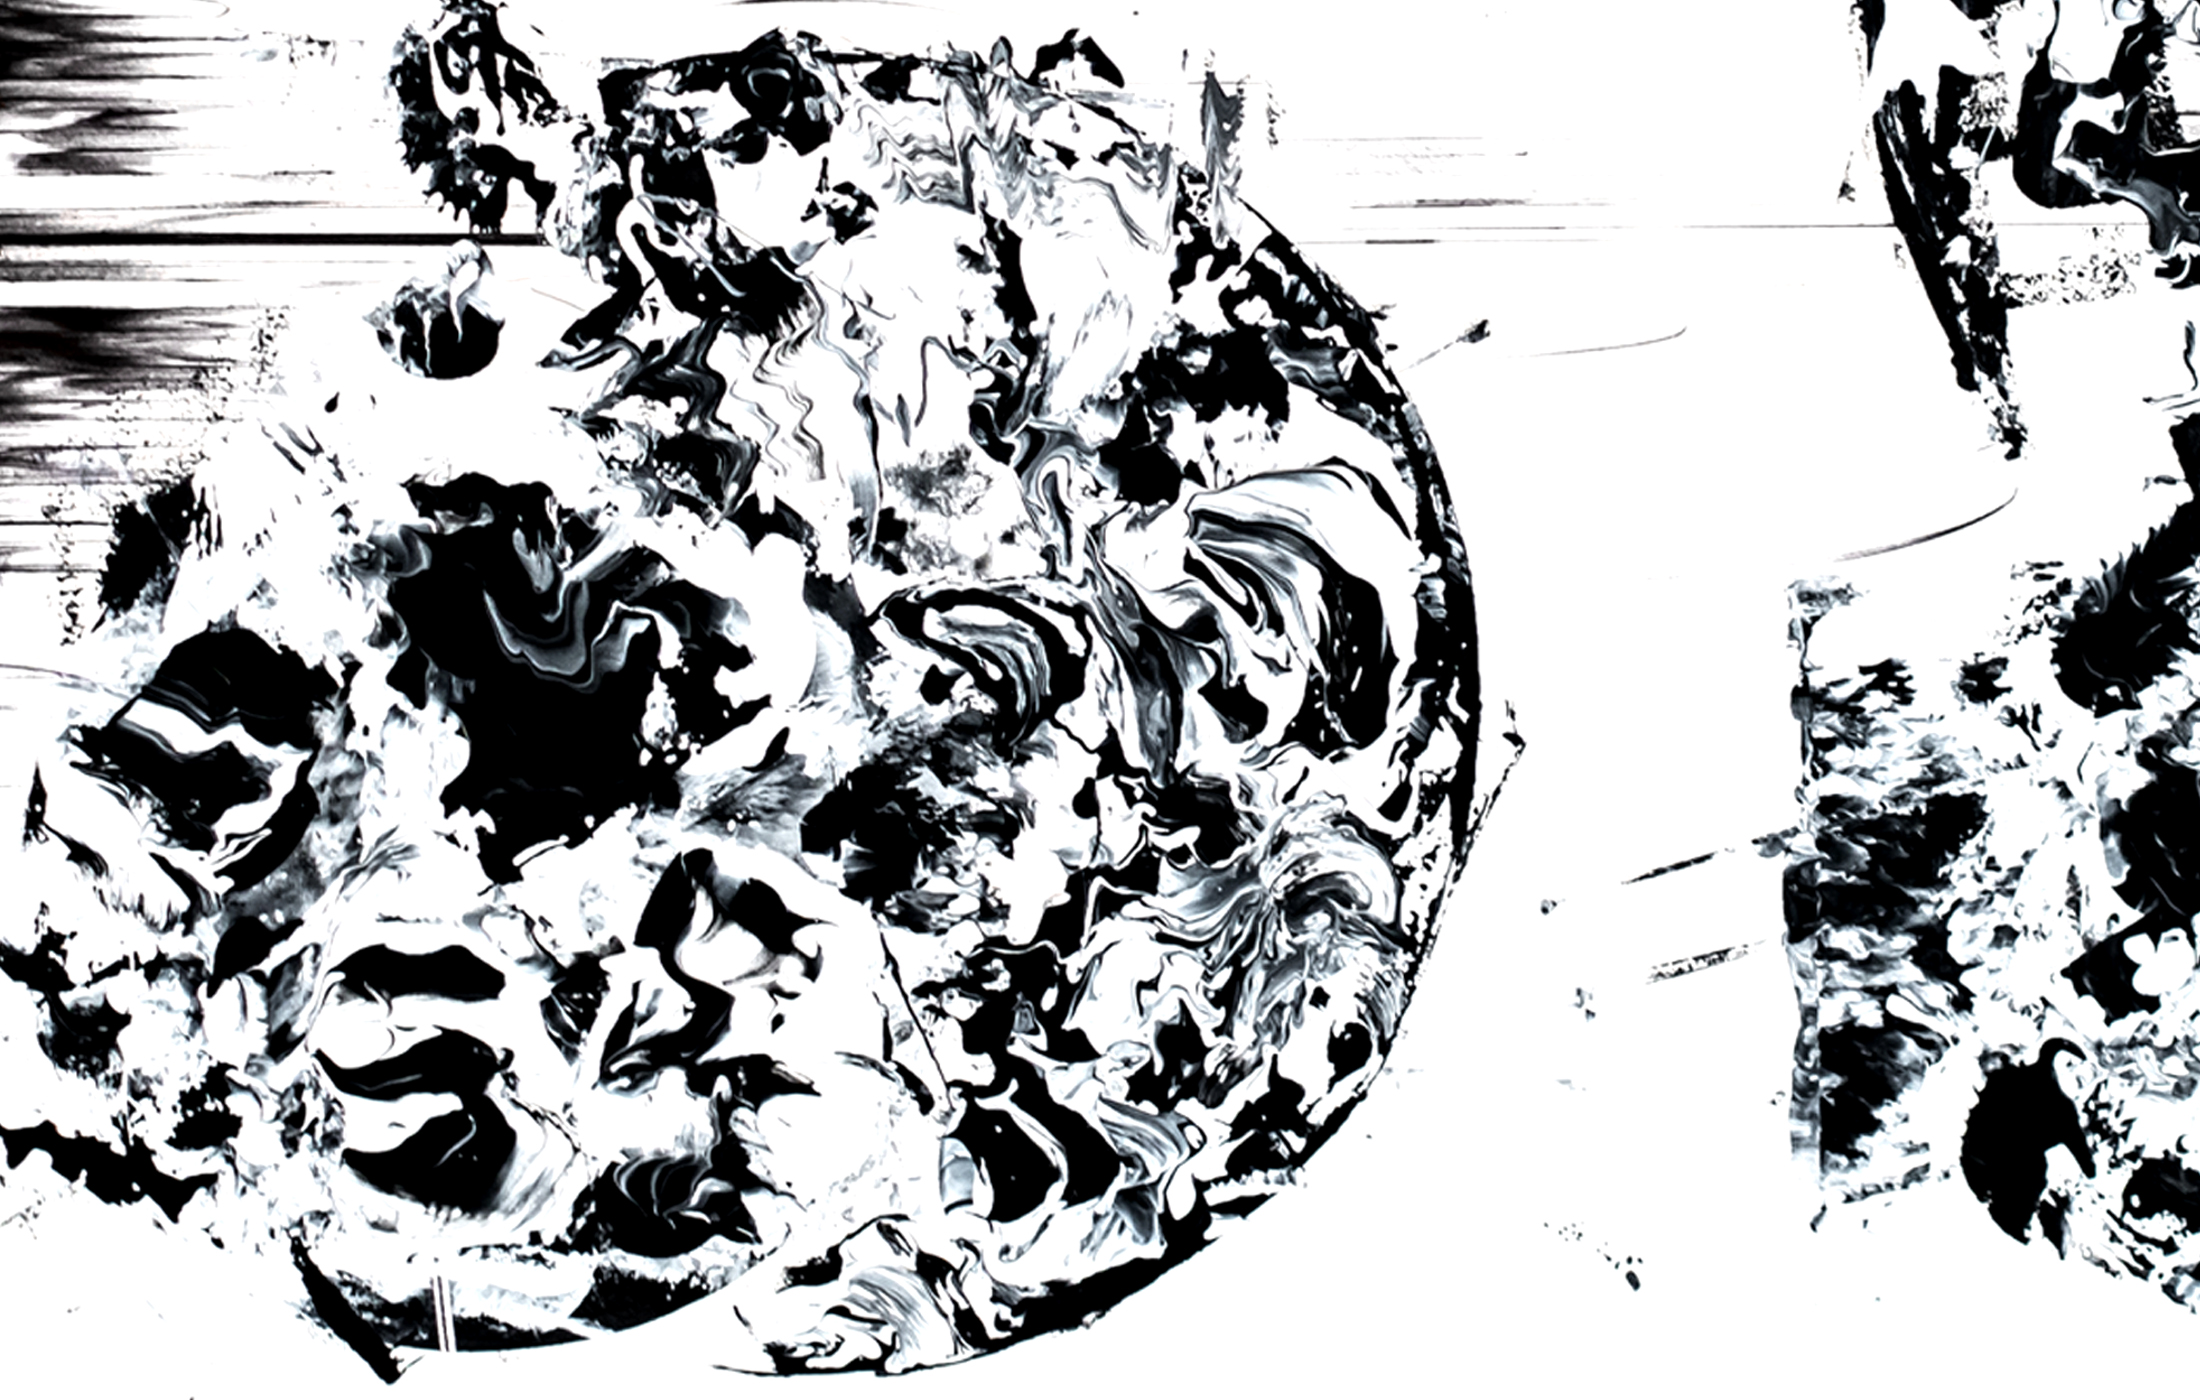 Agathe Toman Et Toi Art Drawing Painting Drawing Abstract Black And White Bic Paint Contemporary